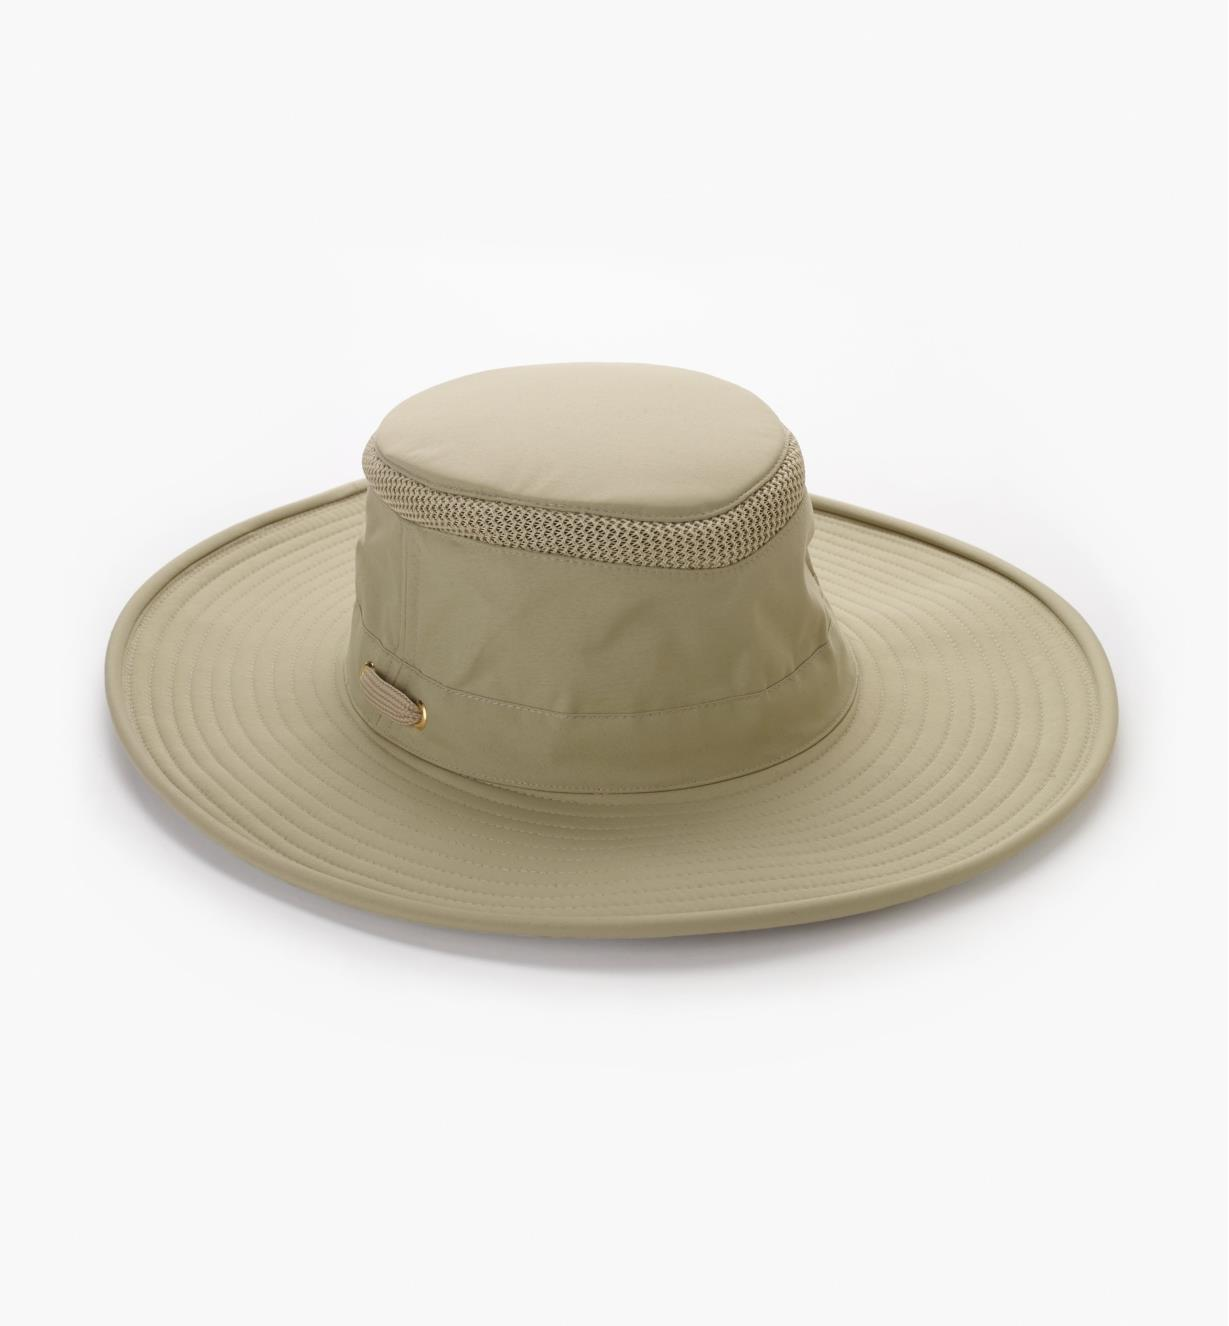 Tilley Airflo Hat, Wide Brim